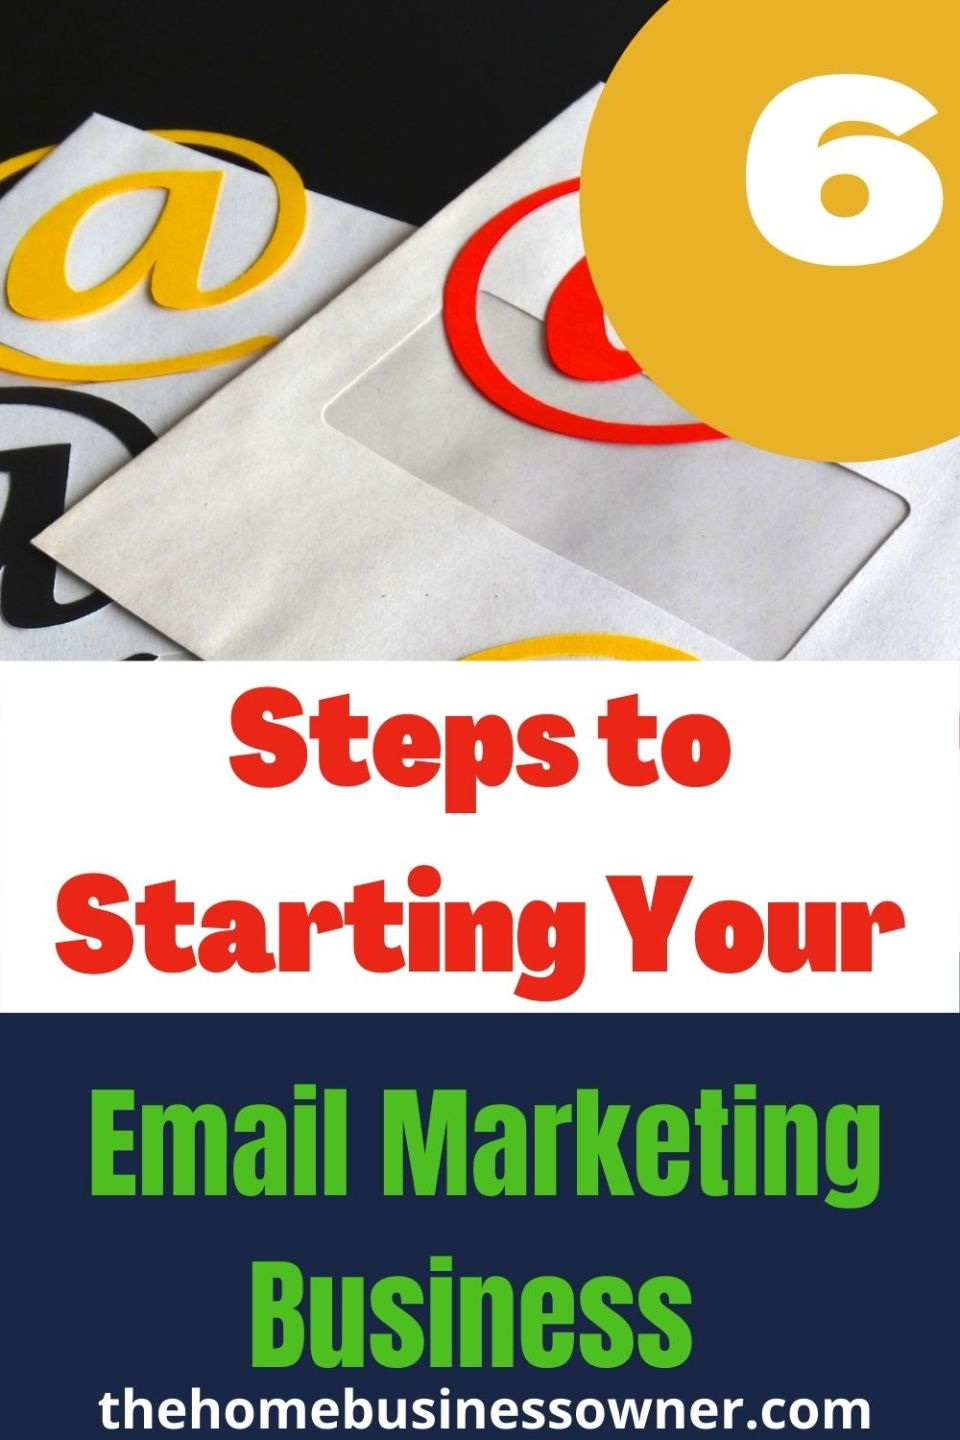 How to start email marketing business. Learn how to leverage the power of emails to create a business